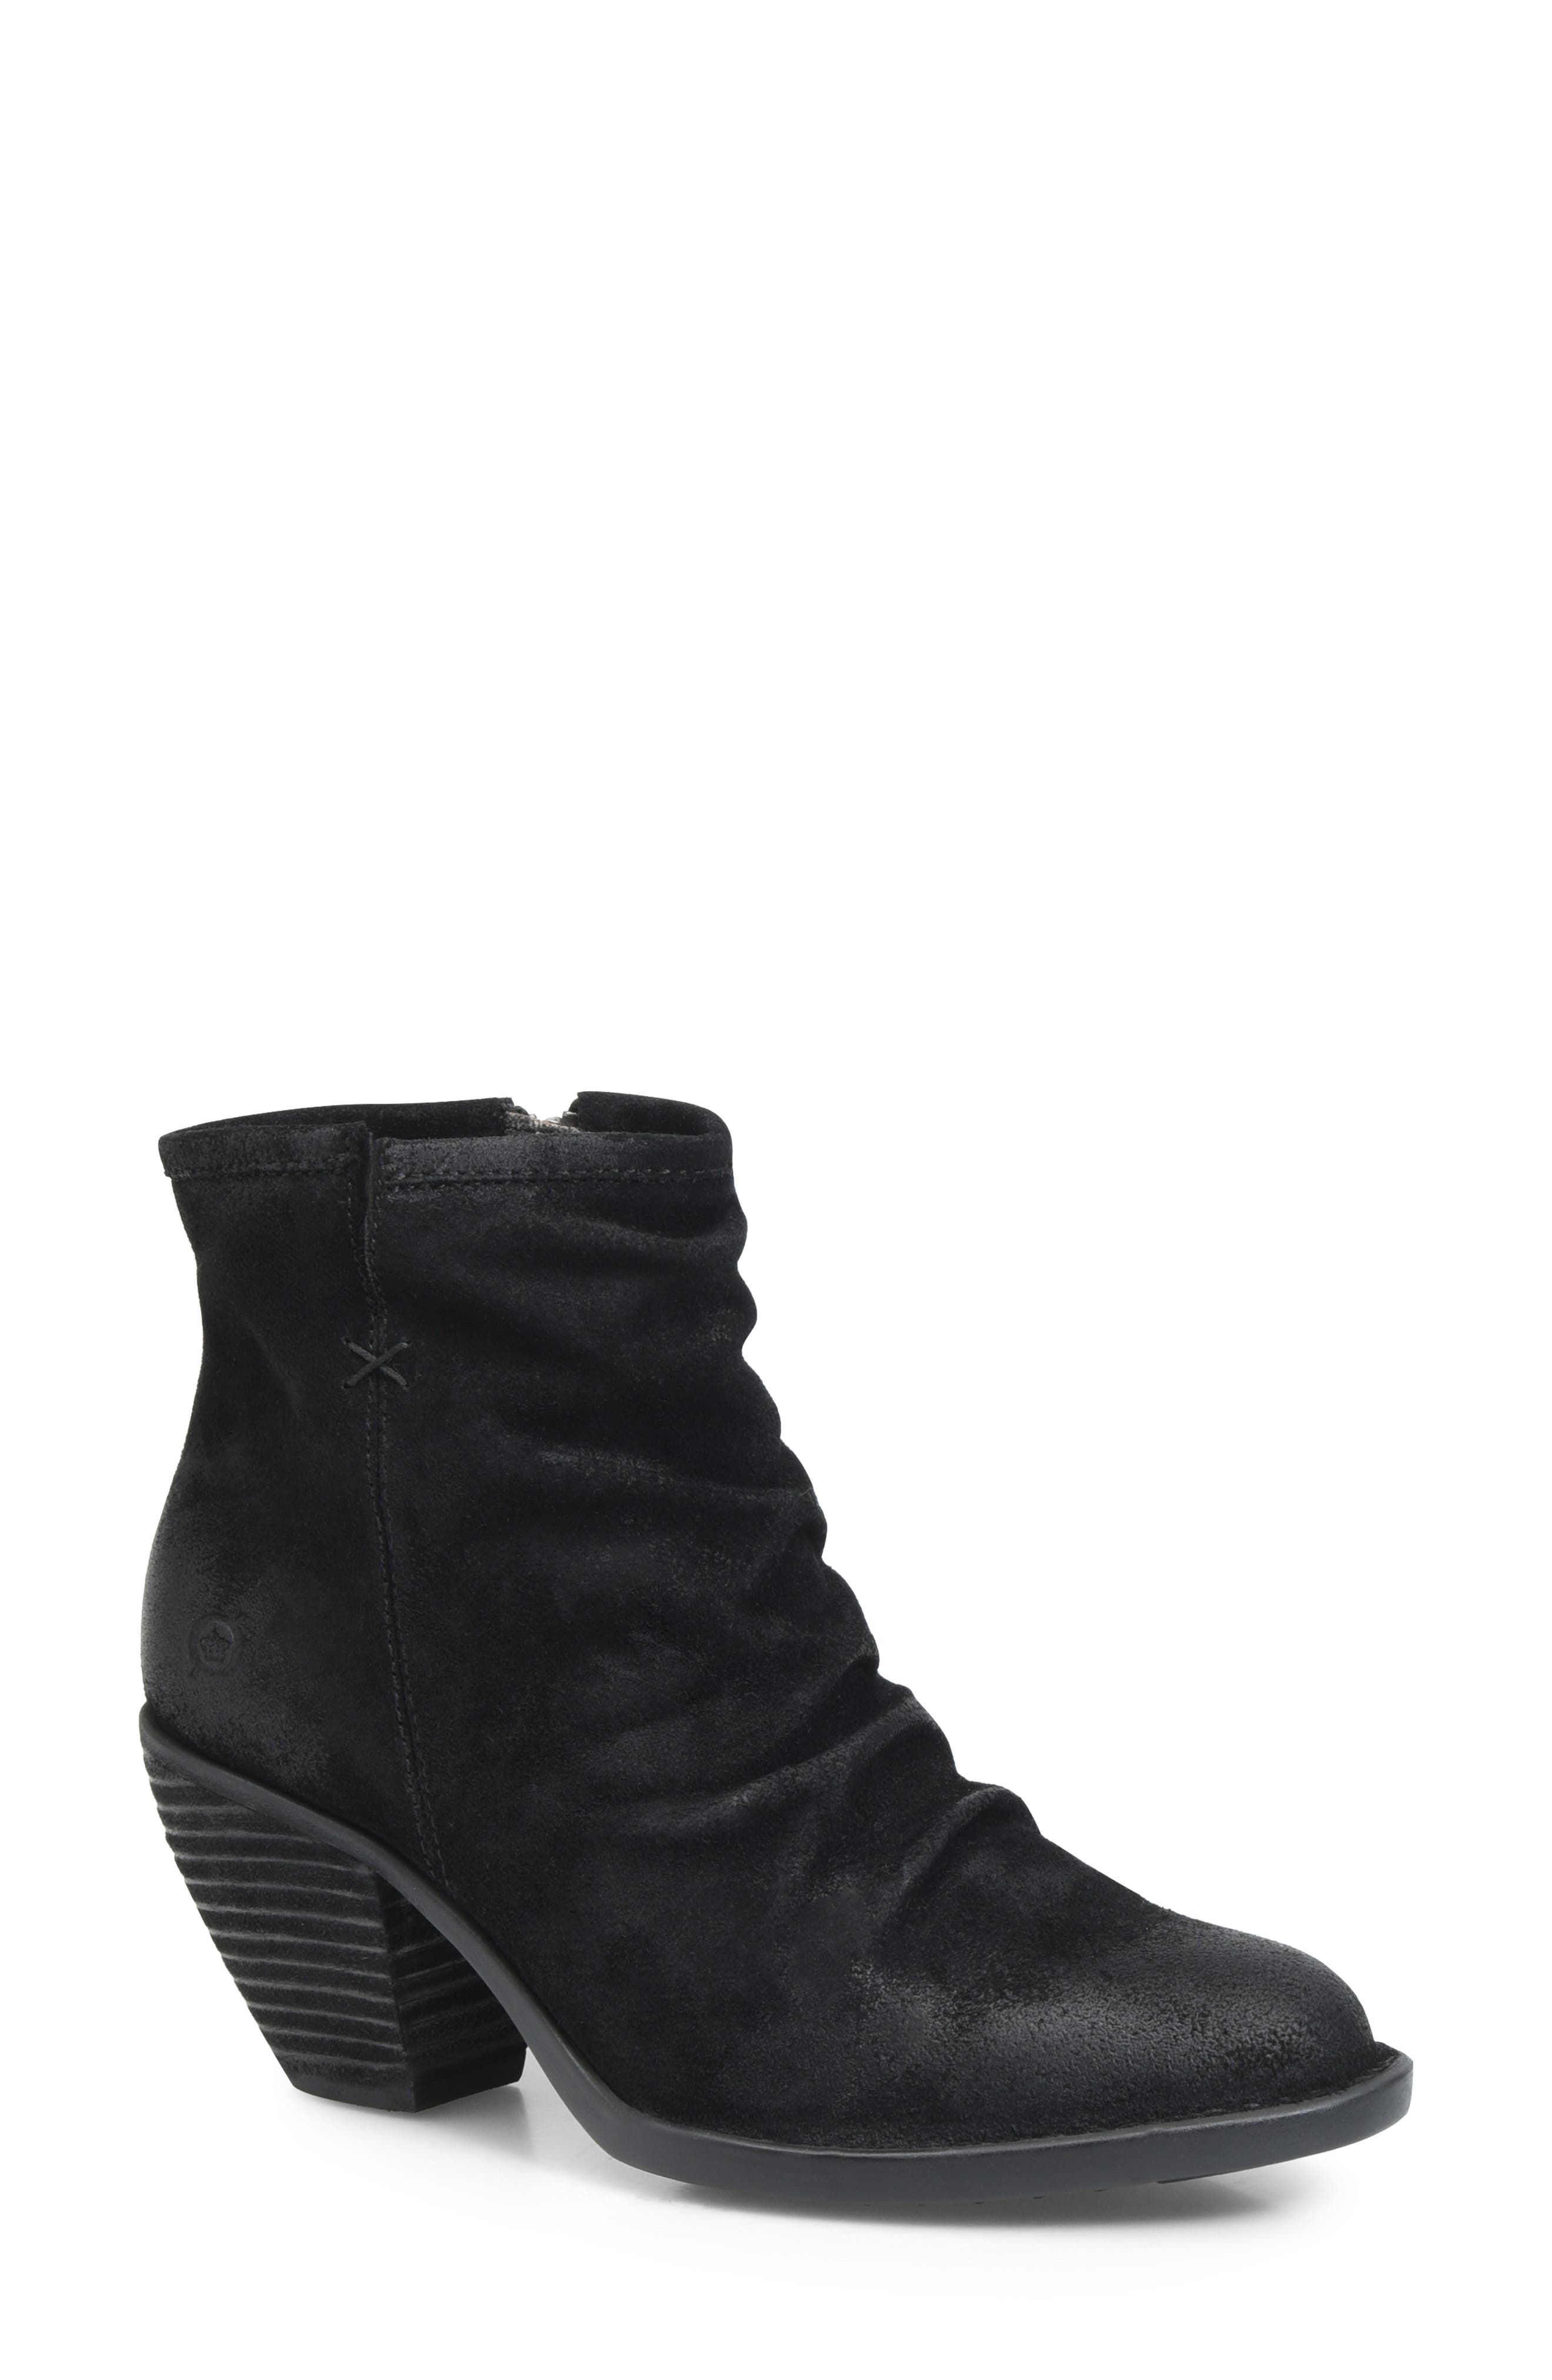 B?rn Aire Bootie, Black